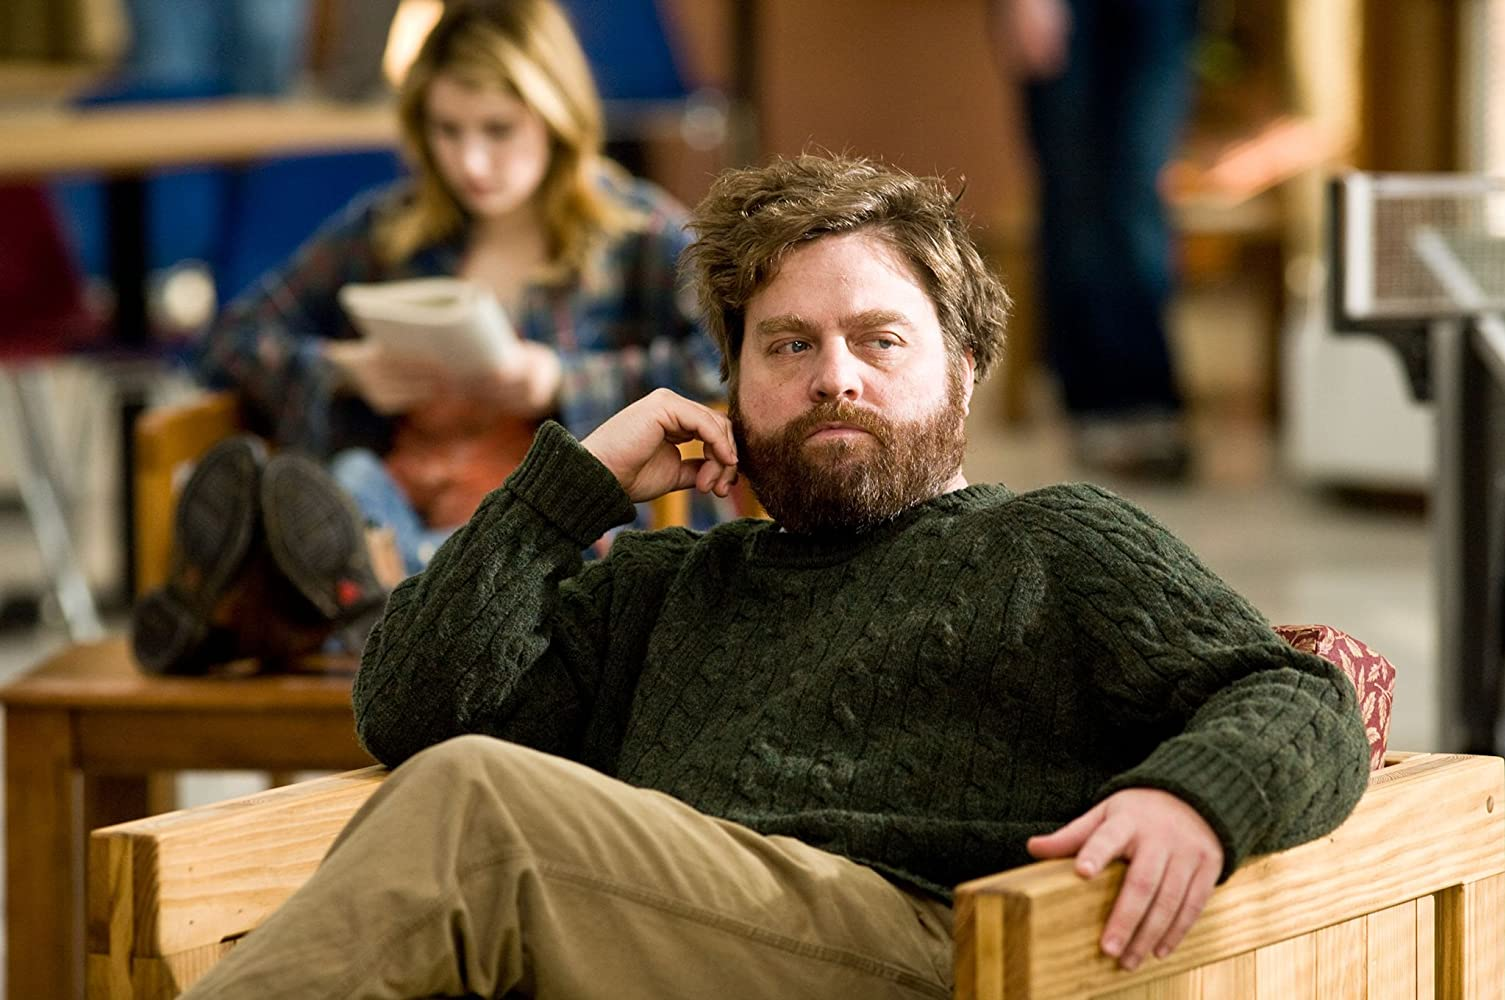 Zach Galifianakis in It's Kind of a Funny Story (2010)